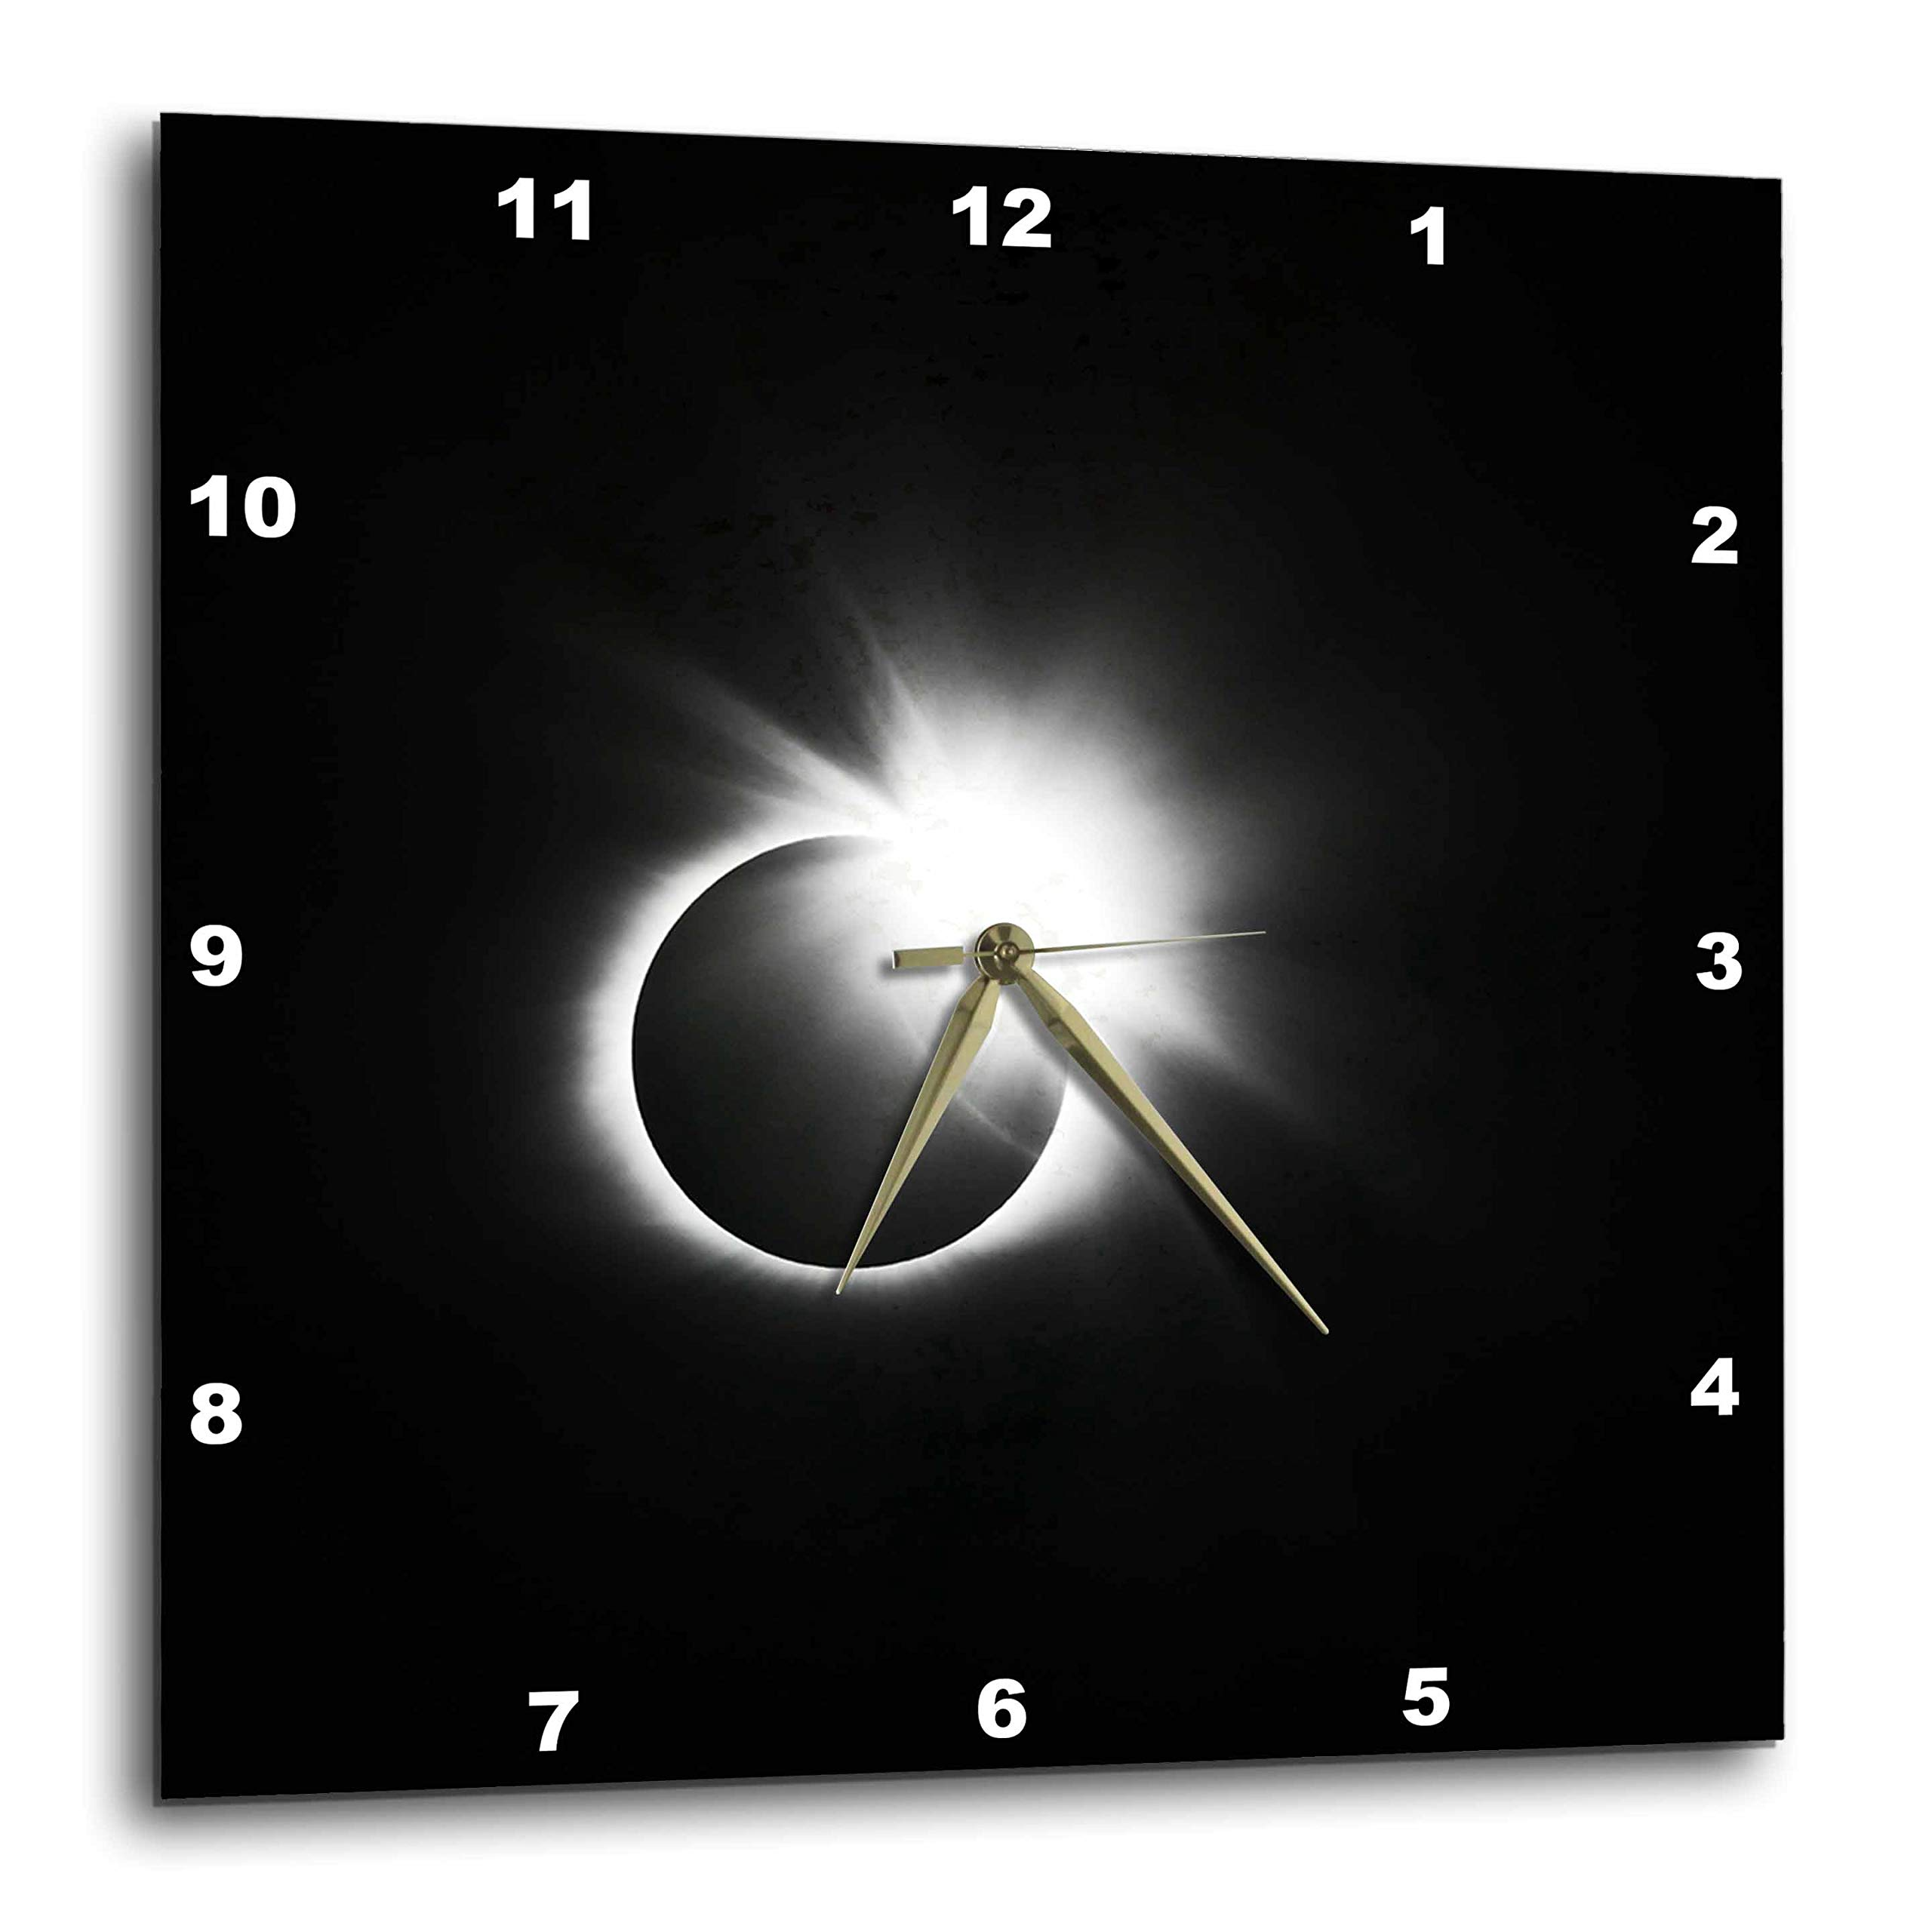 3dRose Stamp City - Astronomy - Photograph of The 2017 Solar Eclipse. Capture of The Diamond Ring. - 15x15 Wall Clock (DPP_290787_3)